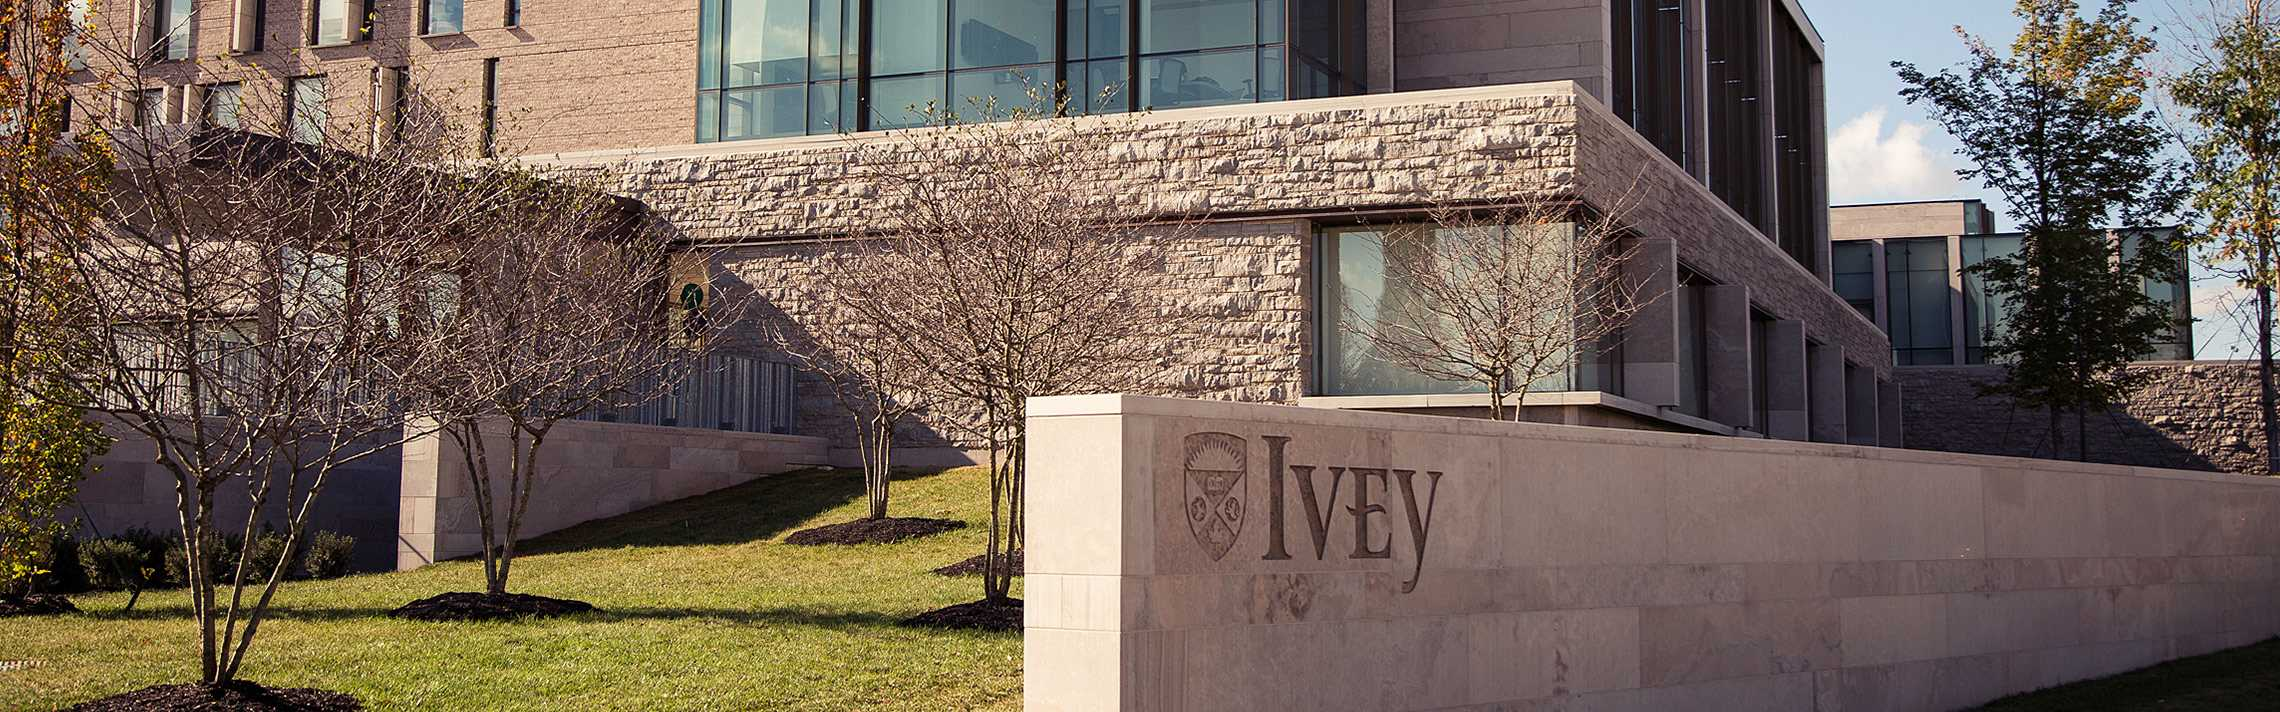 The Ivey Business School building at Western University